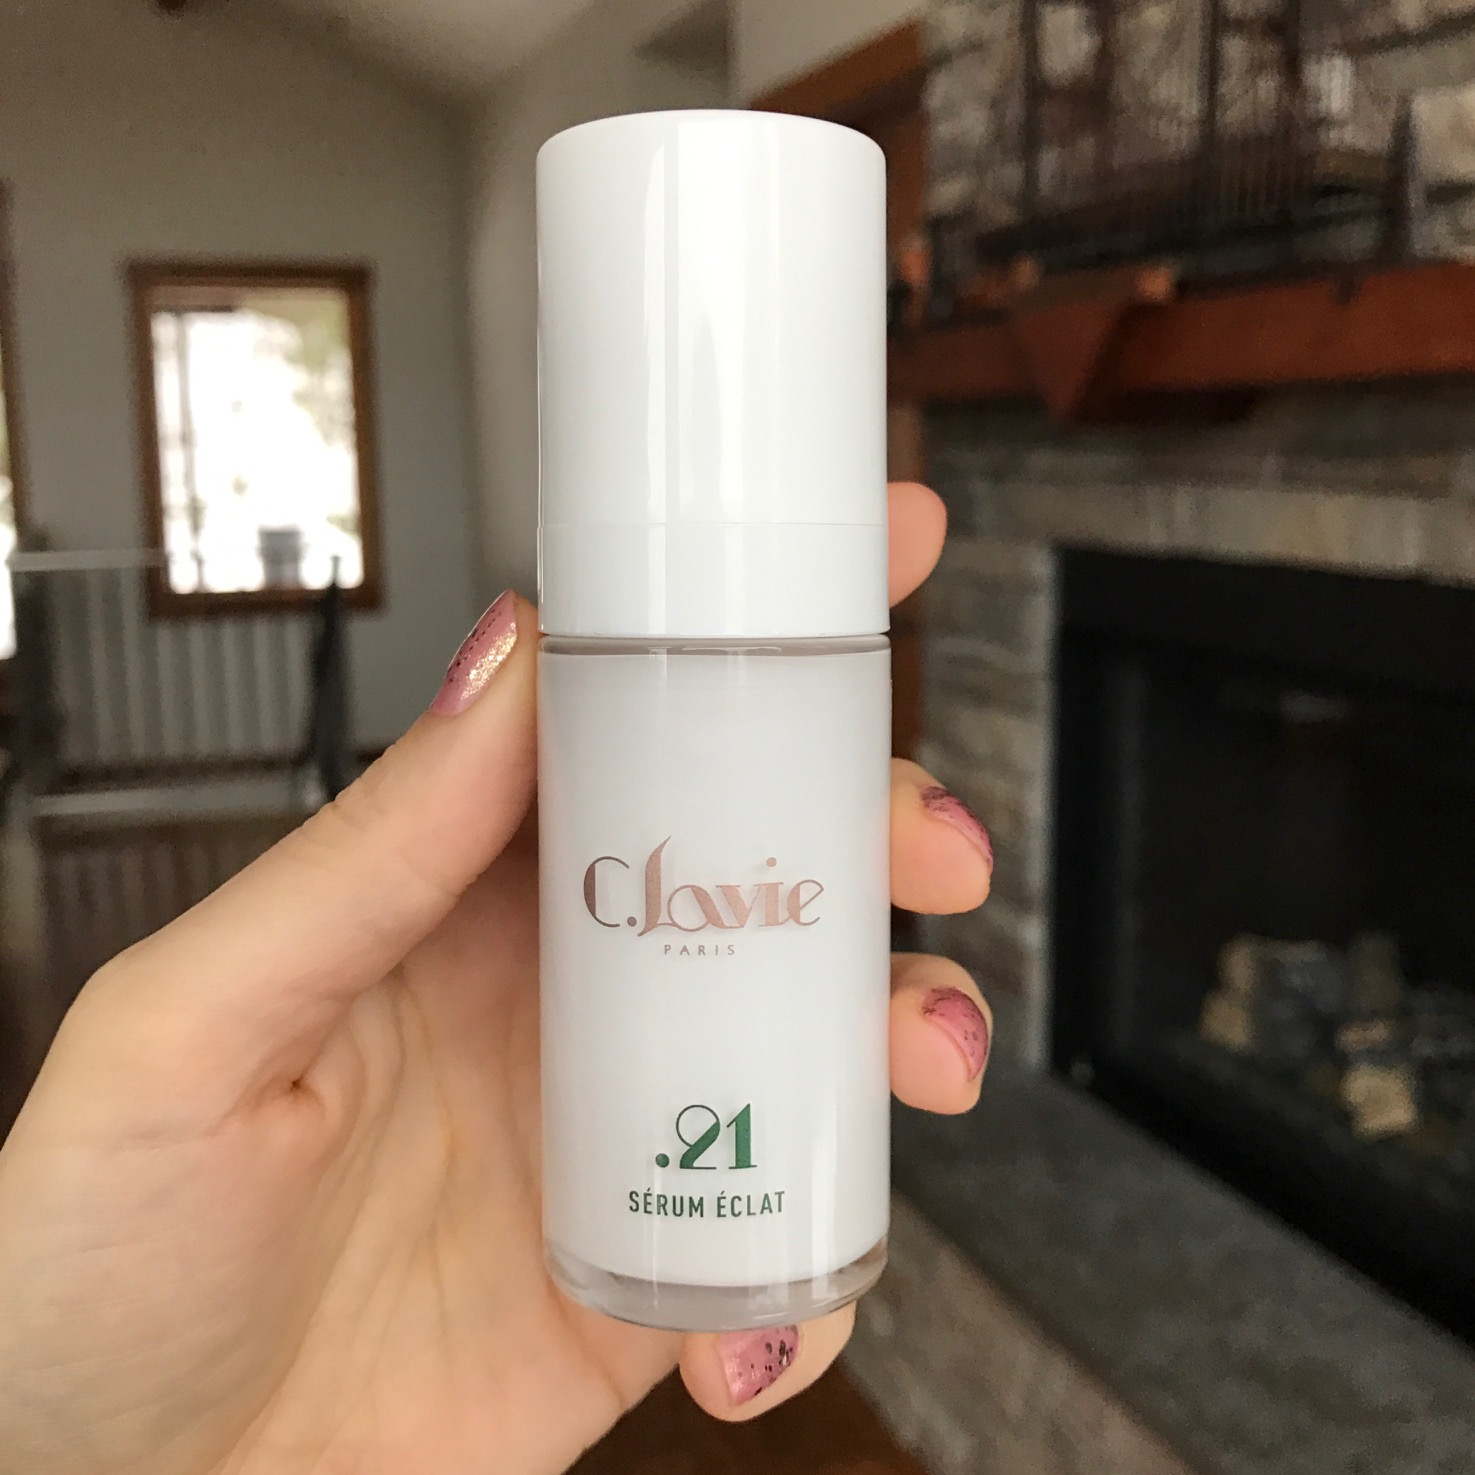 C.Lavie Brightening Serum Review